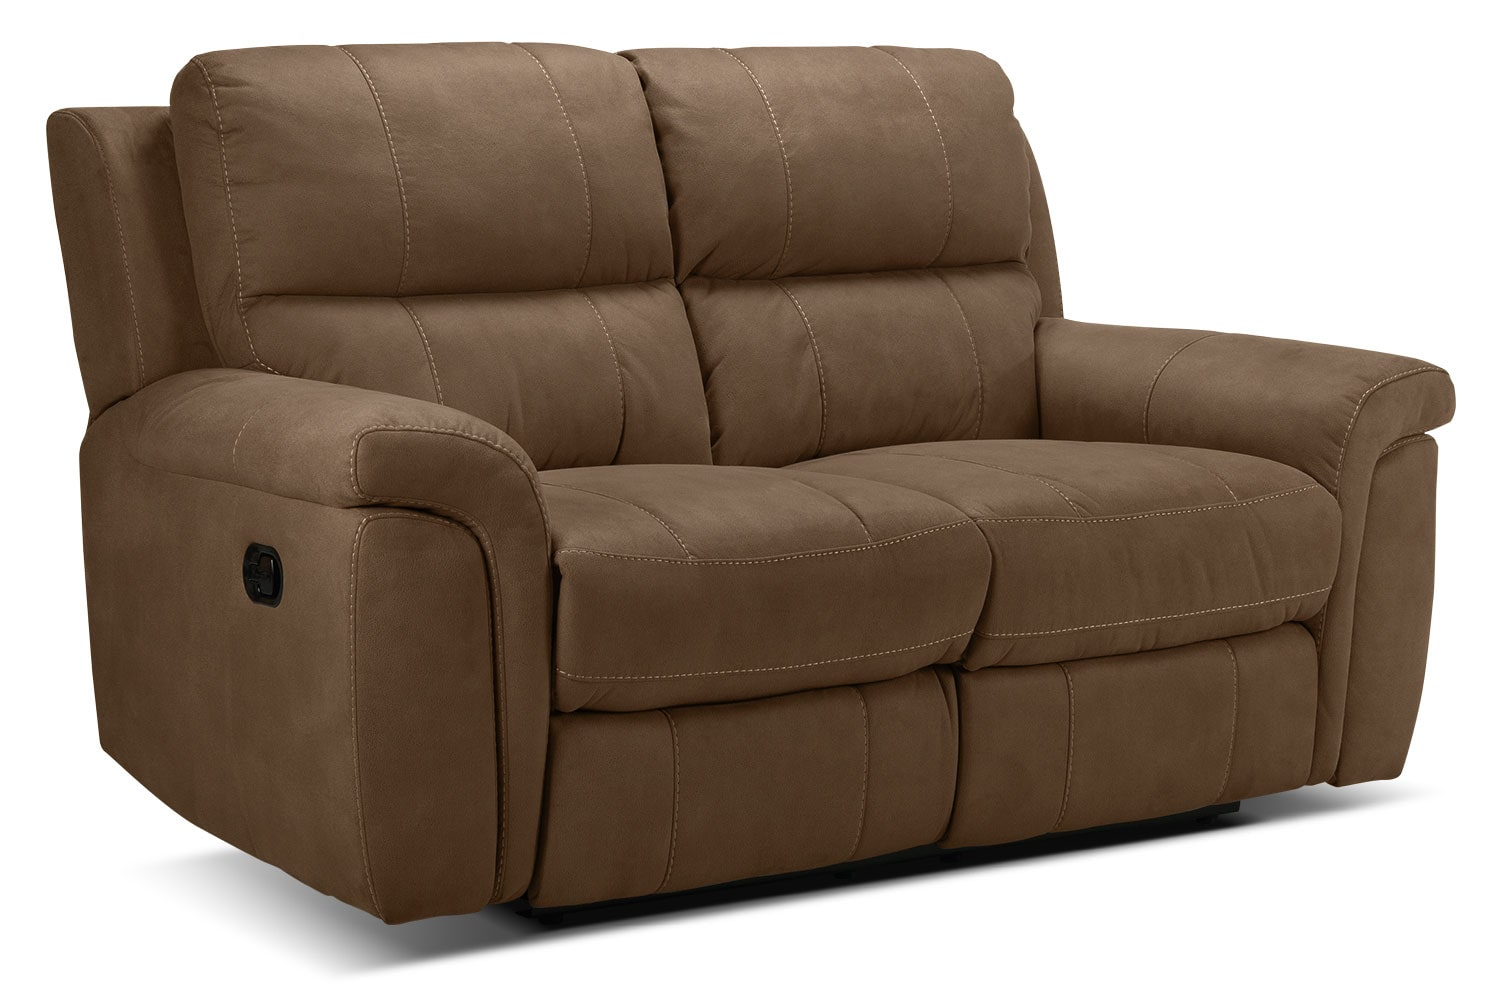 Living Room Furniture - Roarke Reclining Loveseat - Tobacco